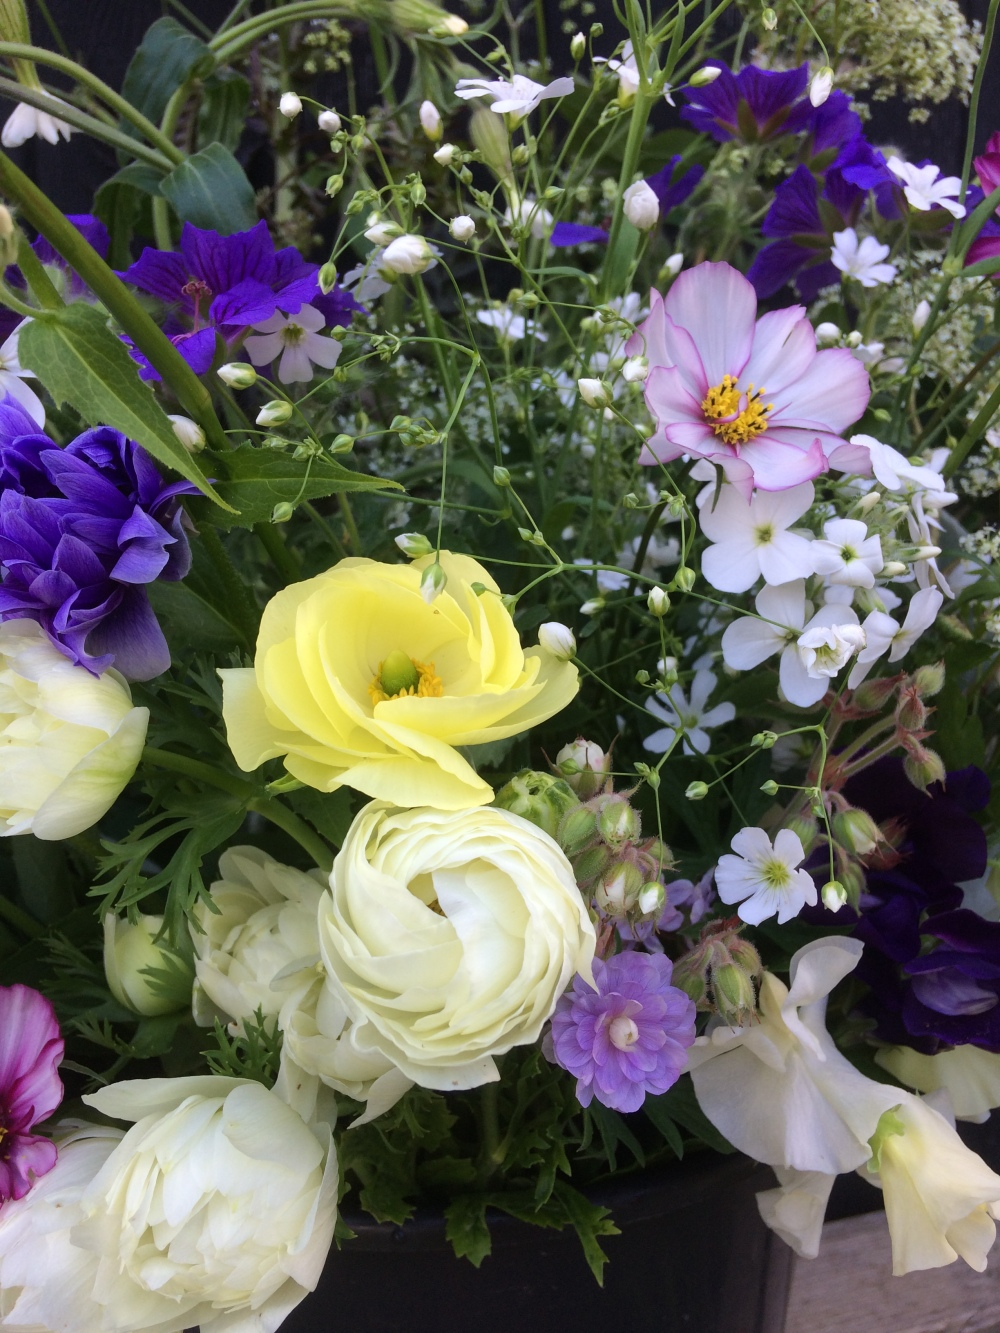 Ranunculus or Persian Buttercups, Gerainum, Cosmos, Gyp, Sweetpeas, Cow parsley, the British Flowers of May, perfect for a Spring Wedding